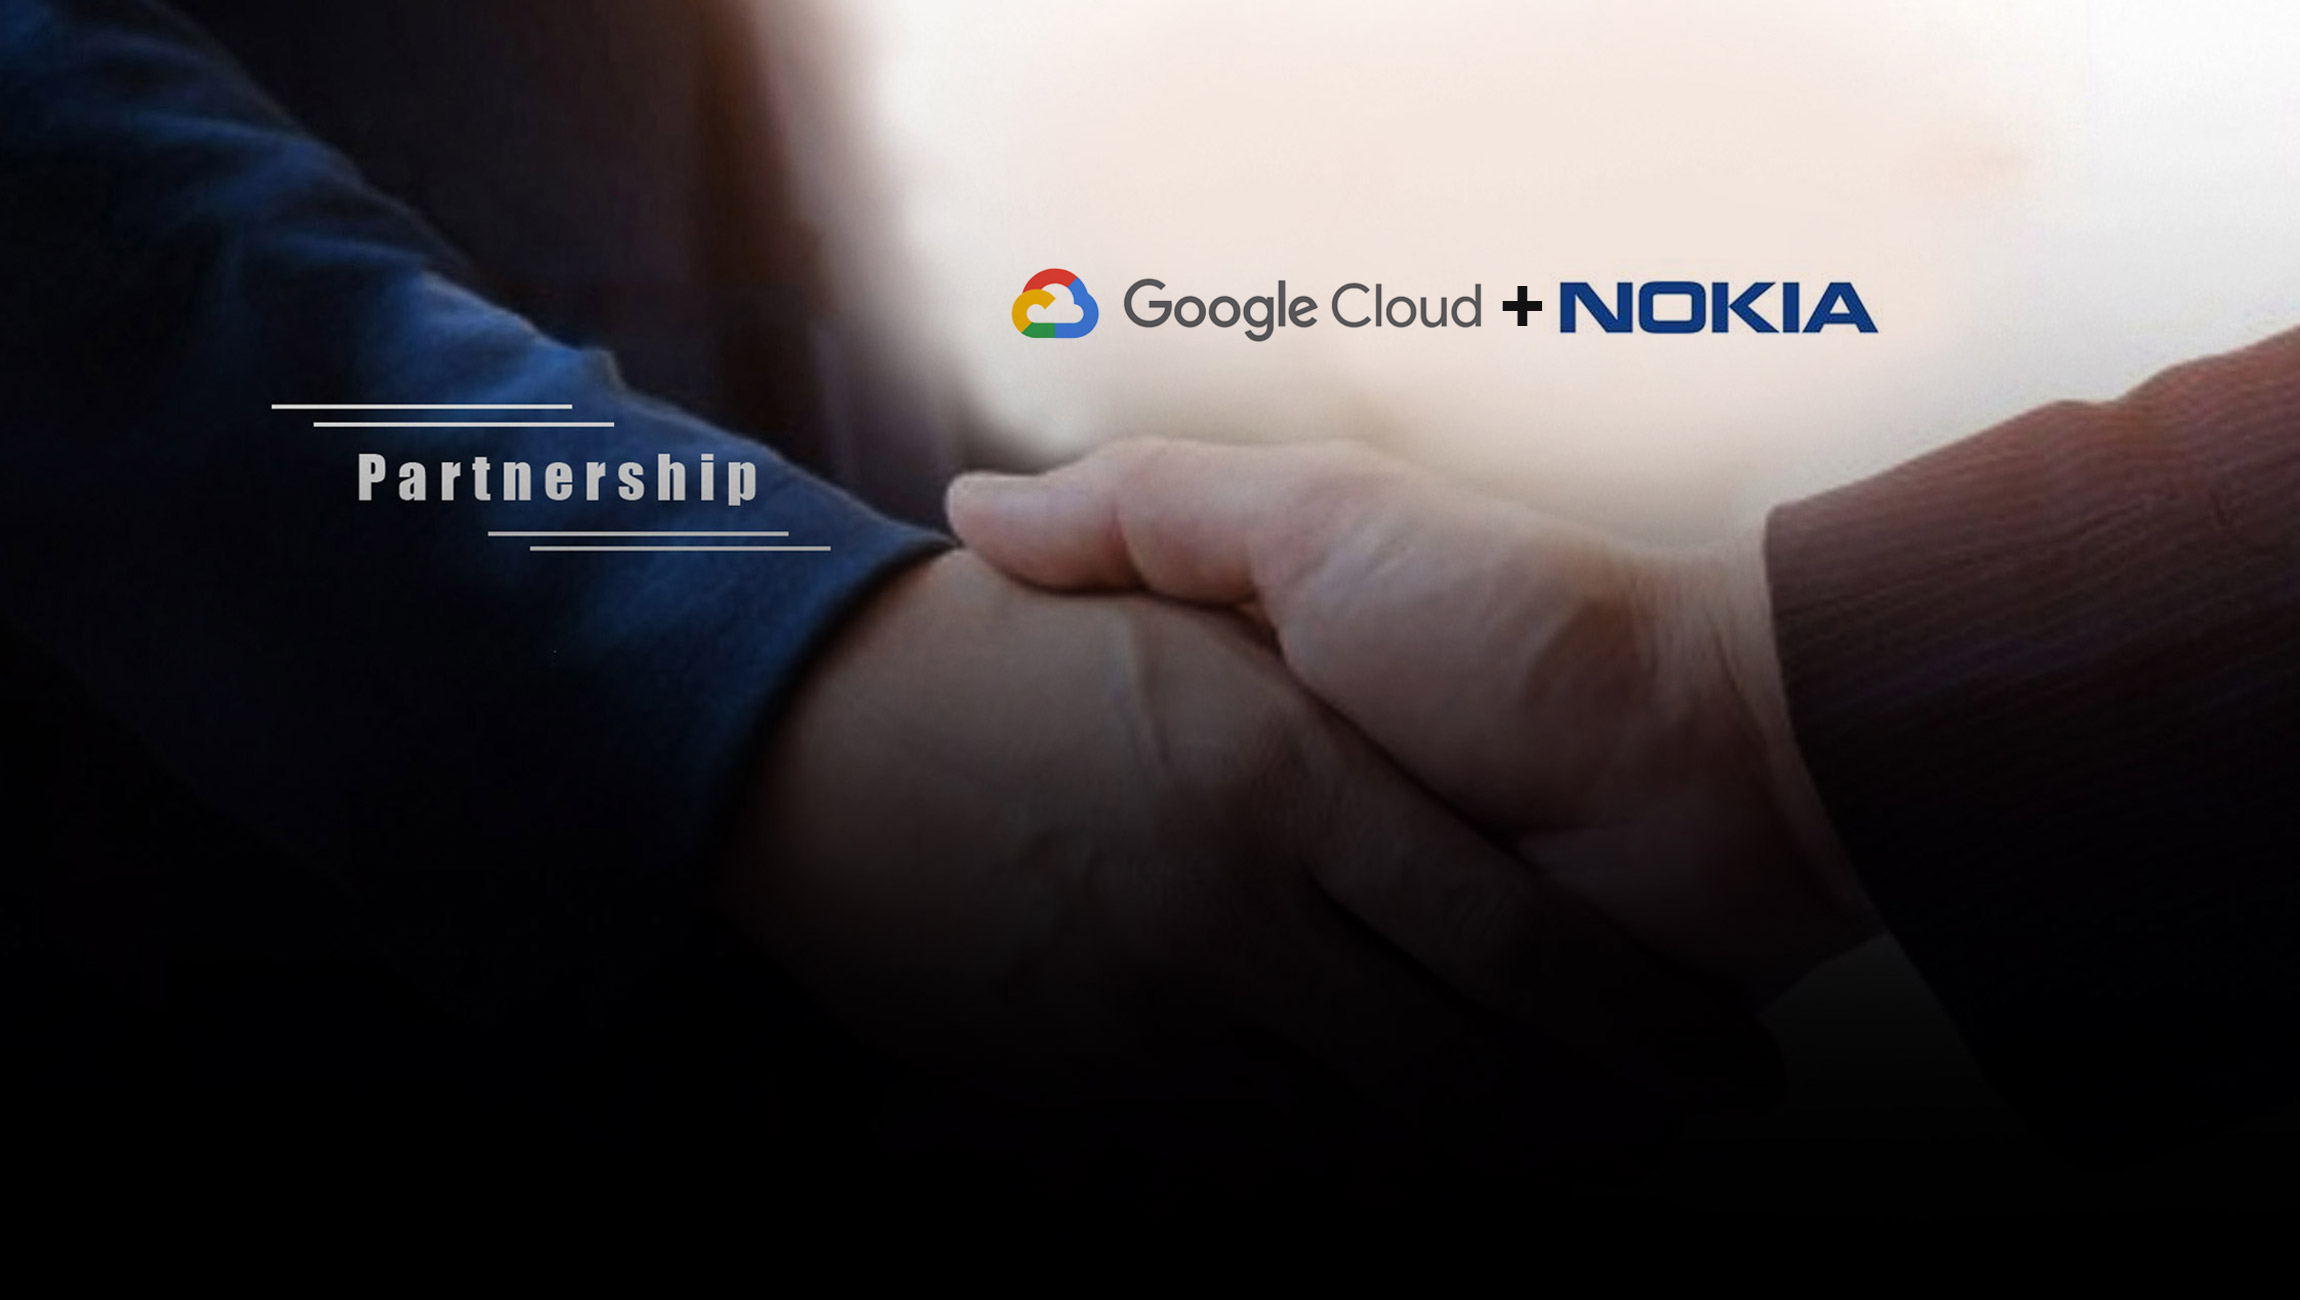 Google Cloud, Nokia Partner to Accelerate Cloud-Native 5G Readiness for Communication Service Providers